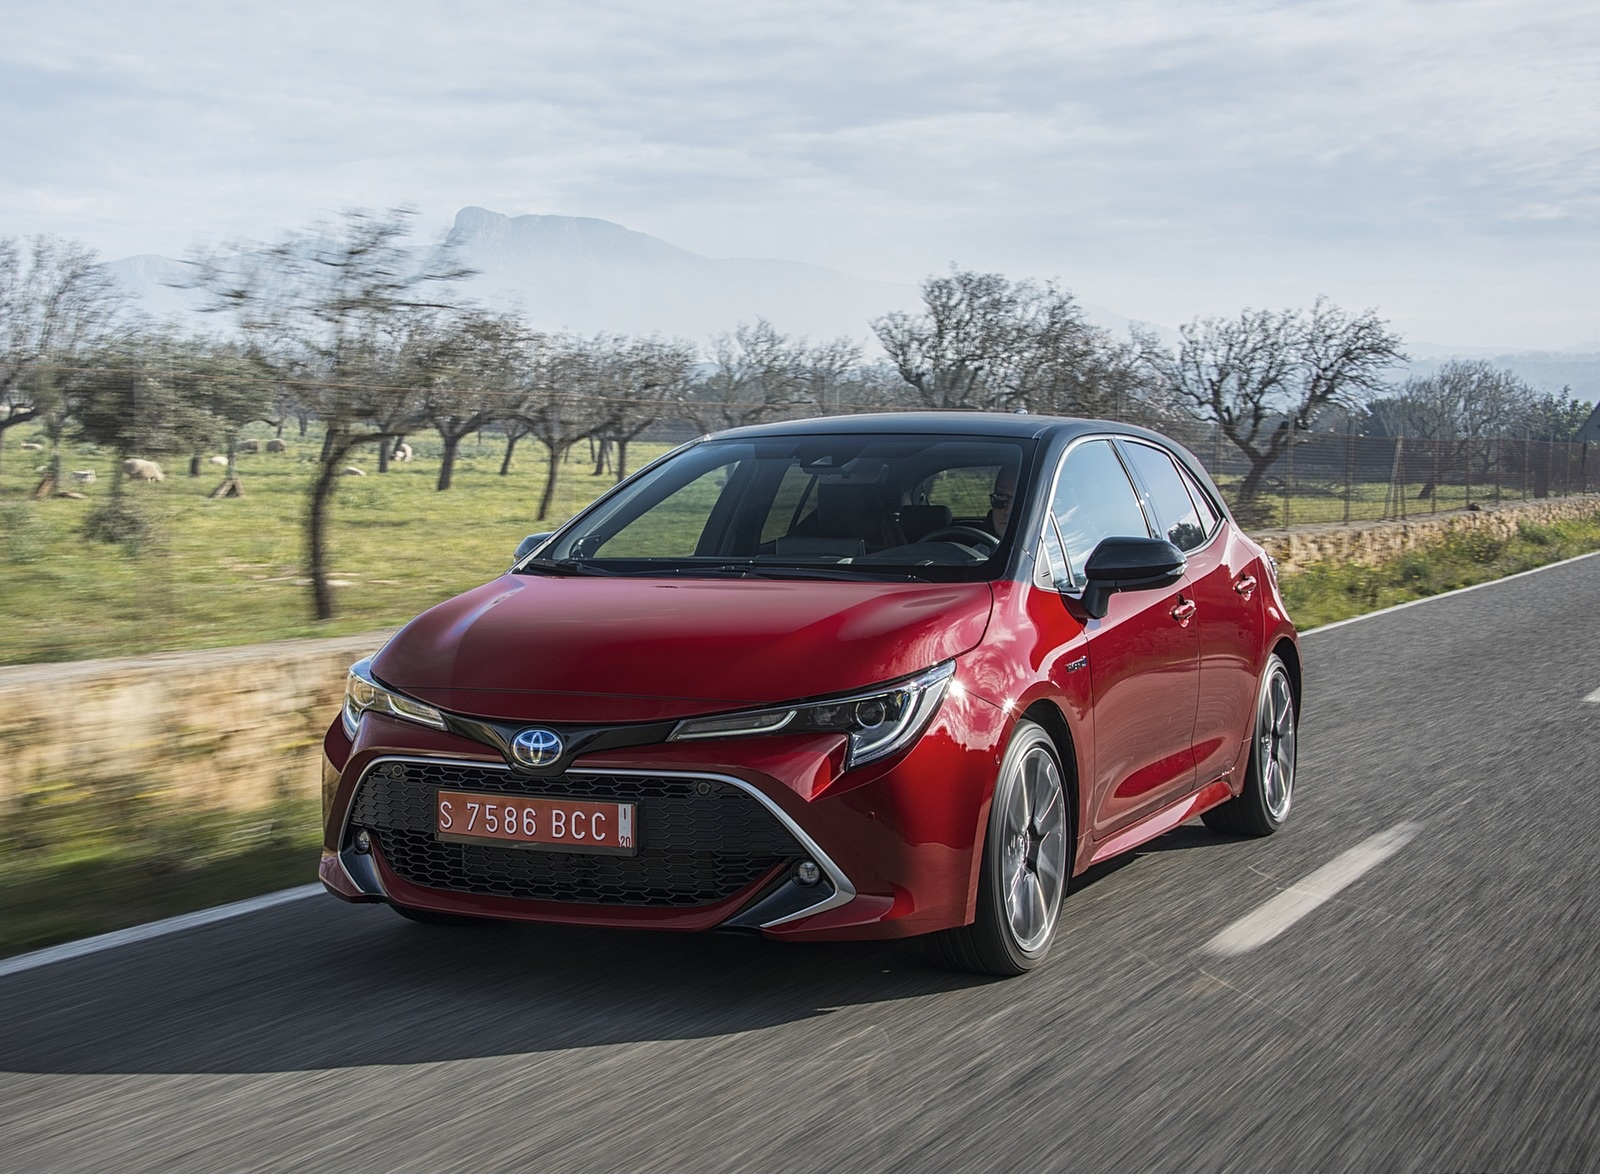 2019 Toyota Corolla Hatchback Hybrid 2.0L Red bitone (EU-Spec) Front Three-Quarter Wallpapers (5)